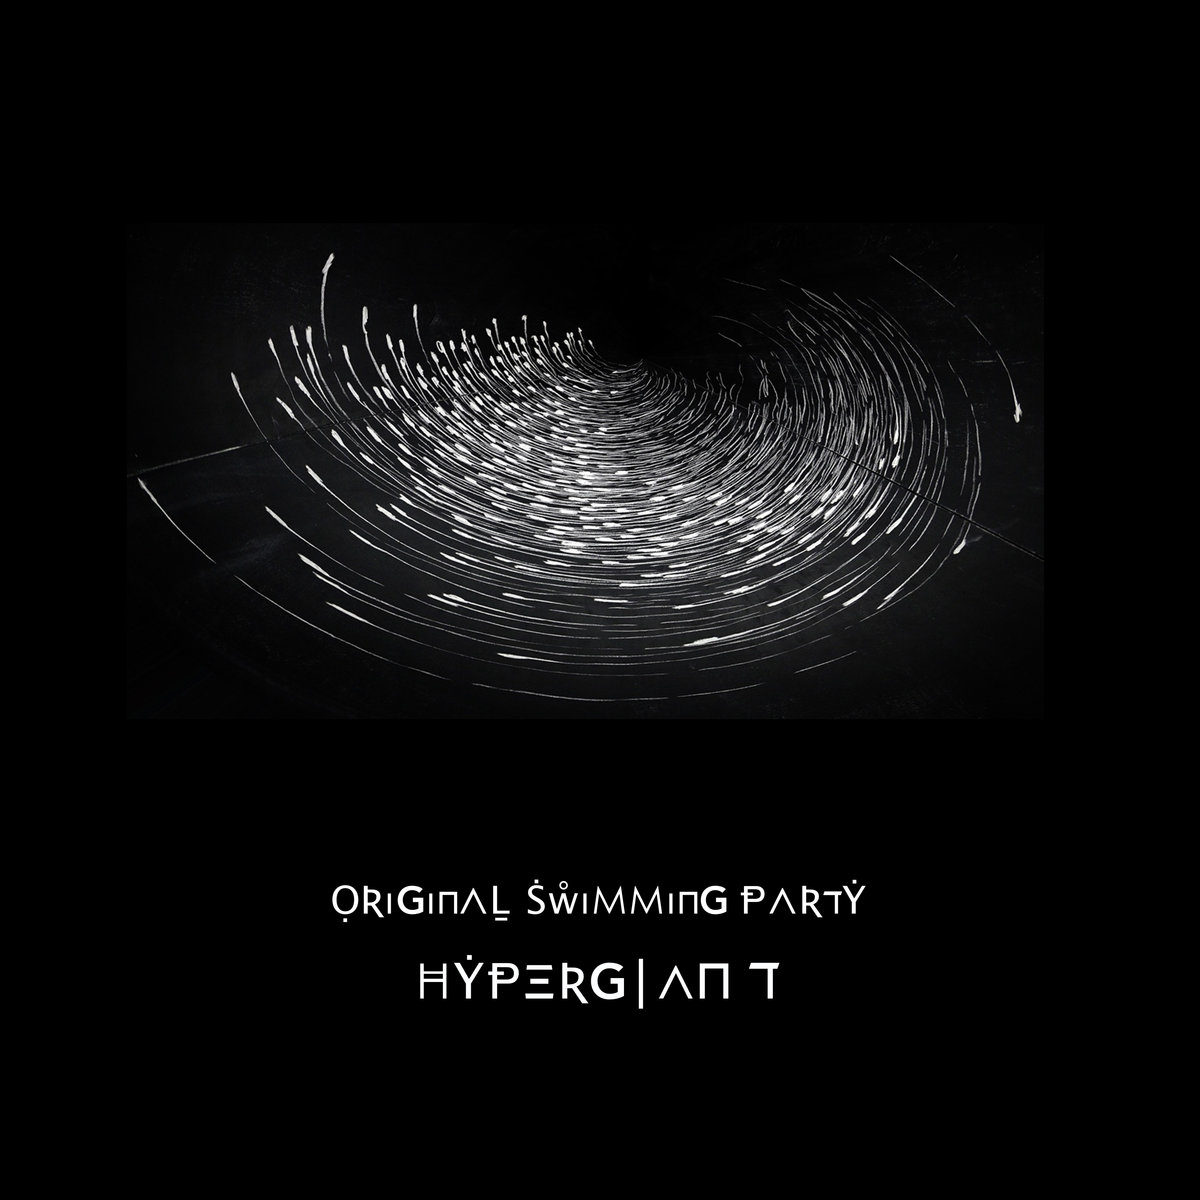 ORIGINAL SWIMMING PARTY - HYPERGIANT - ALBUM WALK THROUGH